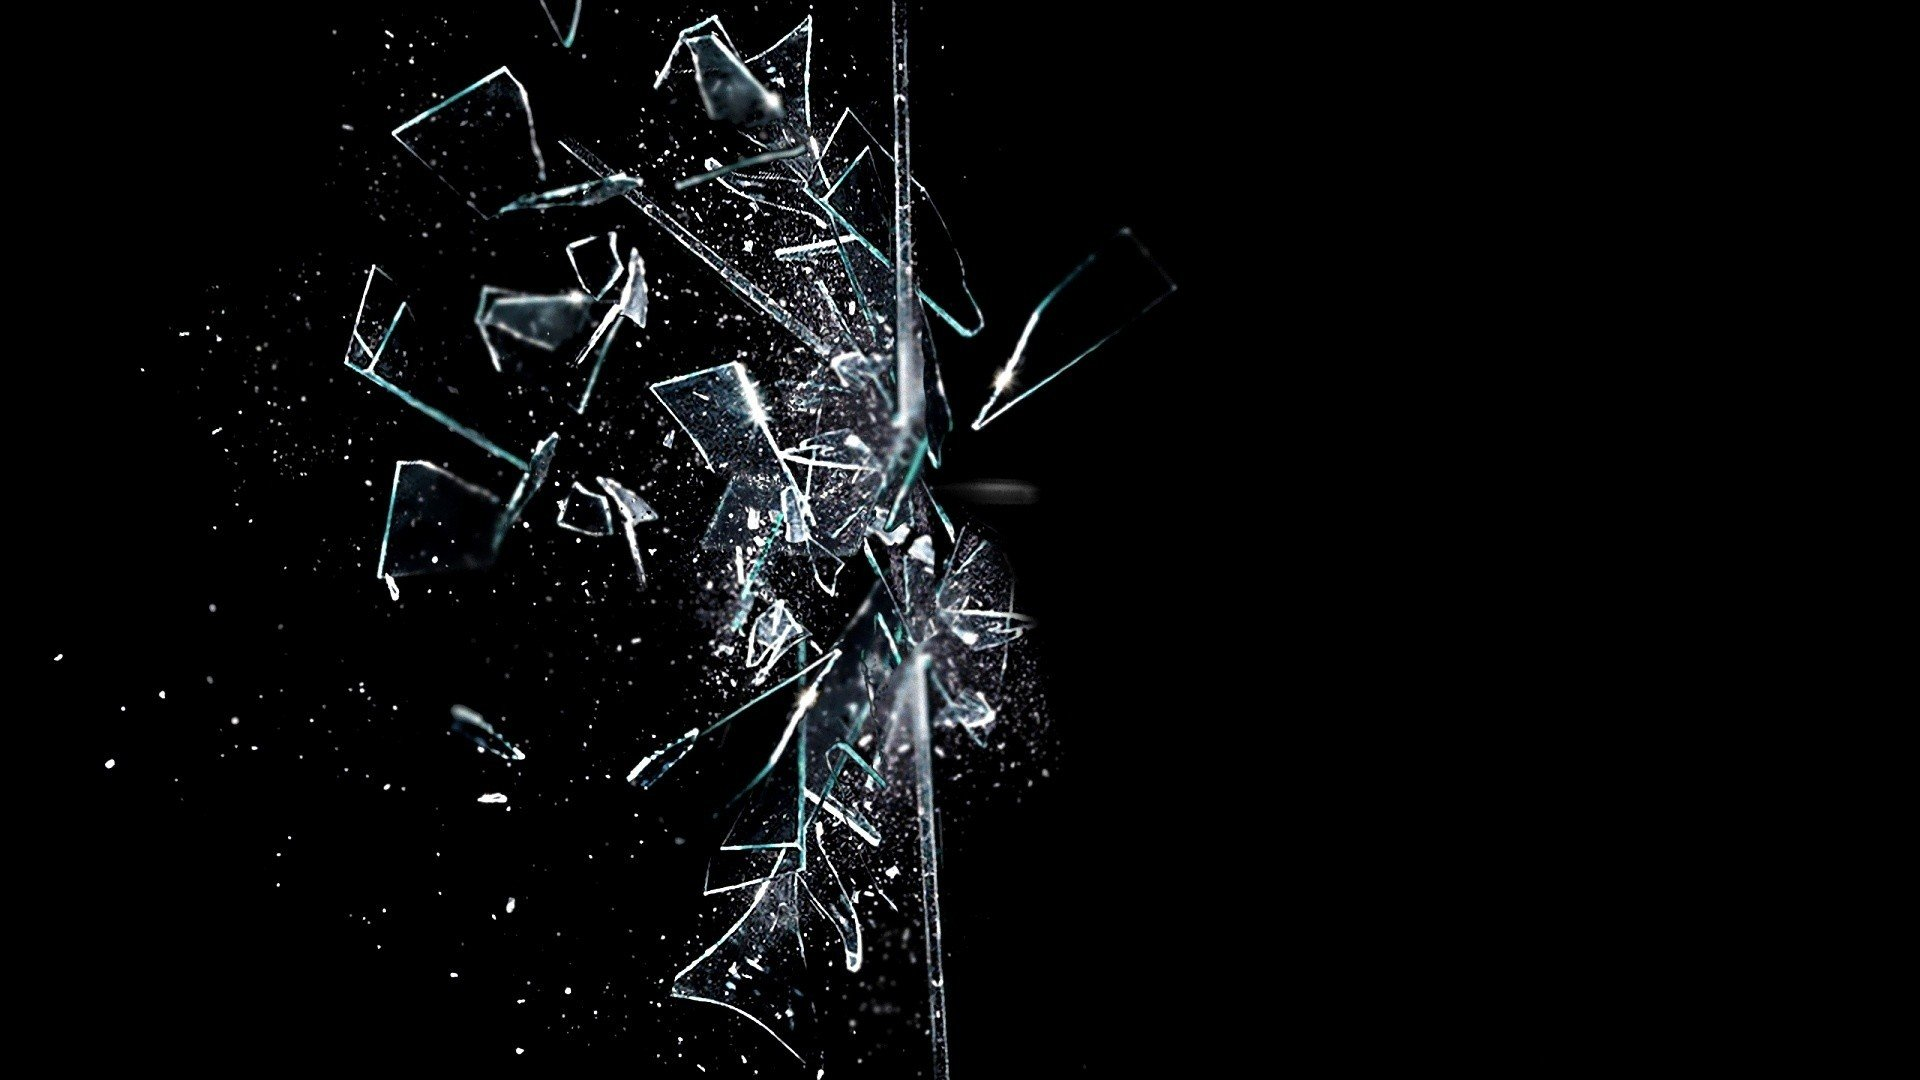 Broken glass shattered crack abstract window bokeh pattern for Window glass design 5 serial number